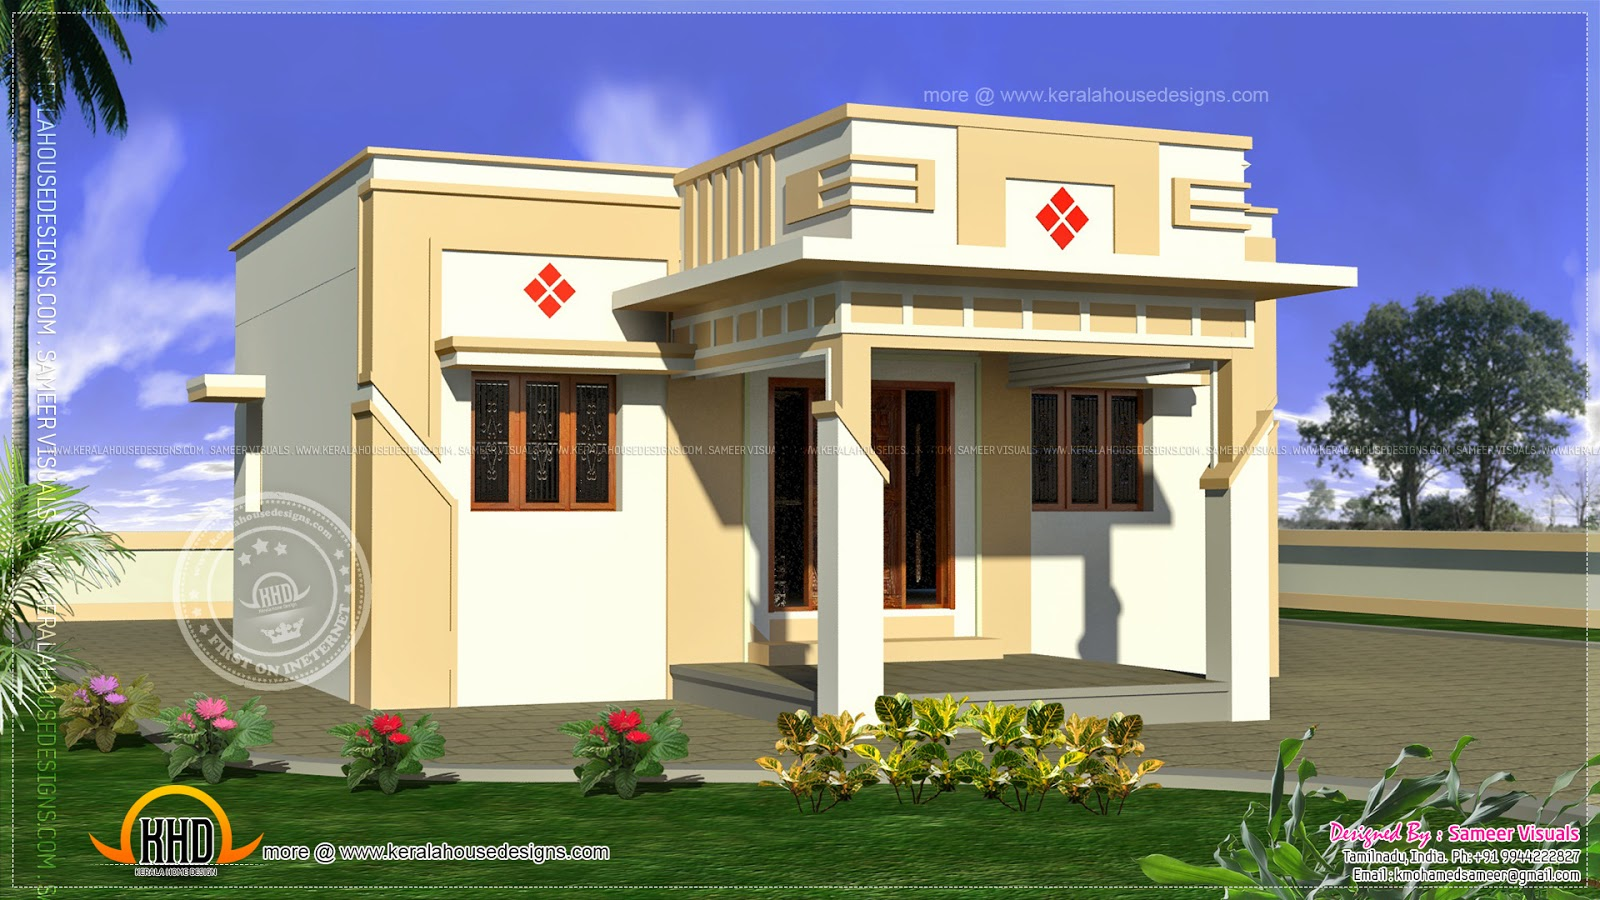 Home Construction Low Cost Home Construction In Kerala